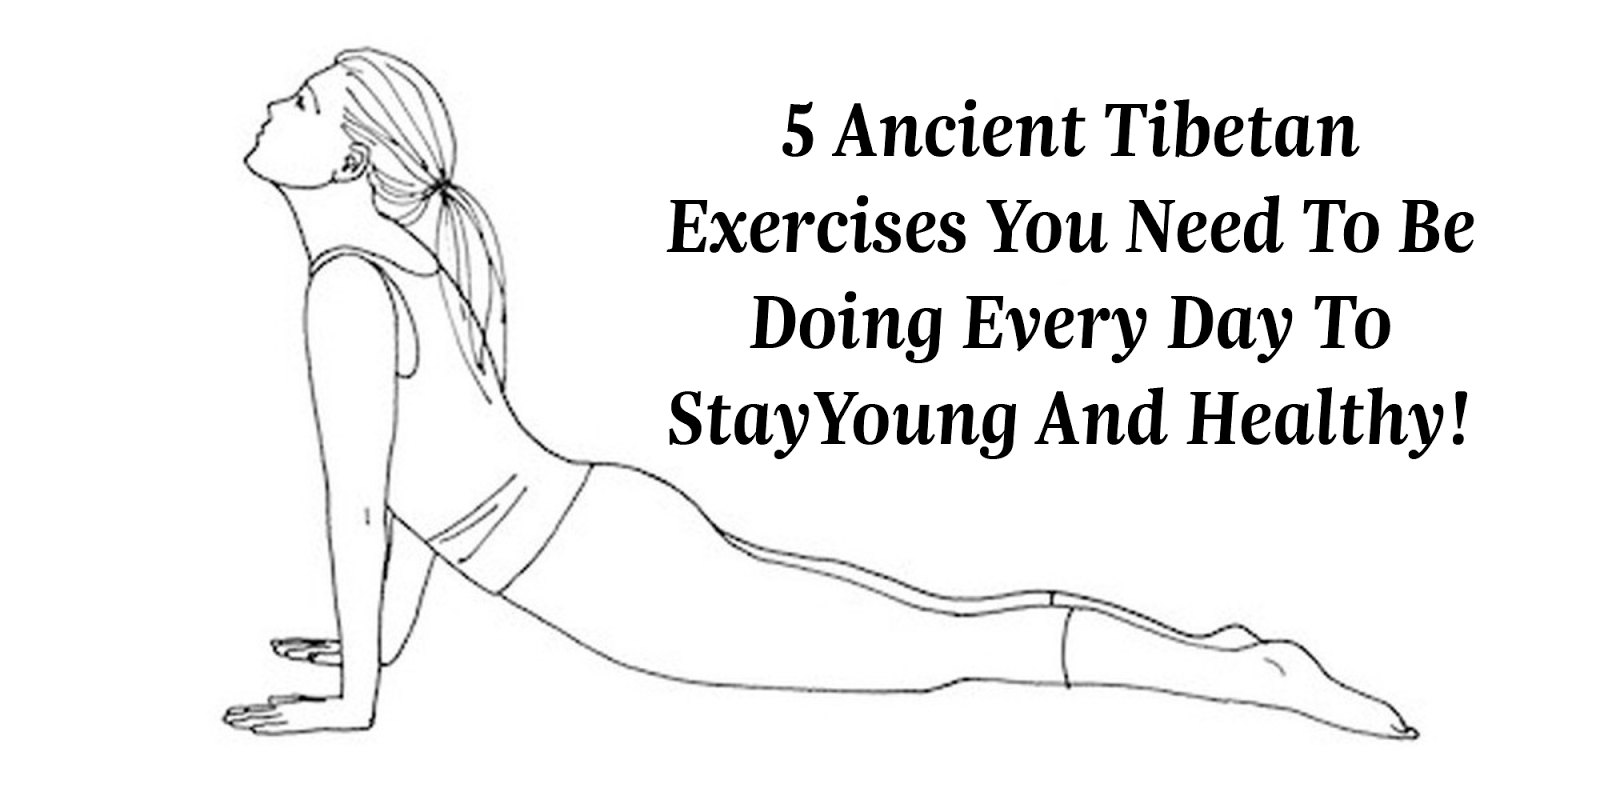 5 ancient tibetan exercises you need to be doing every day to stay young and healthy